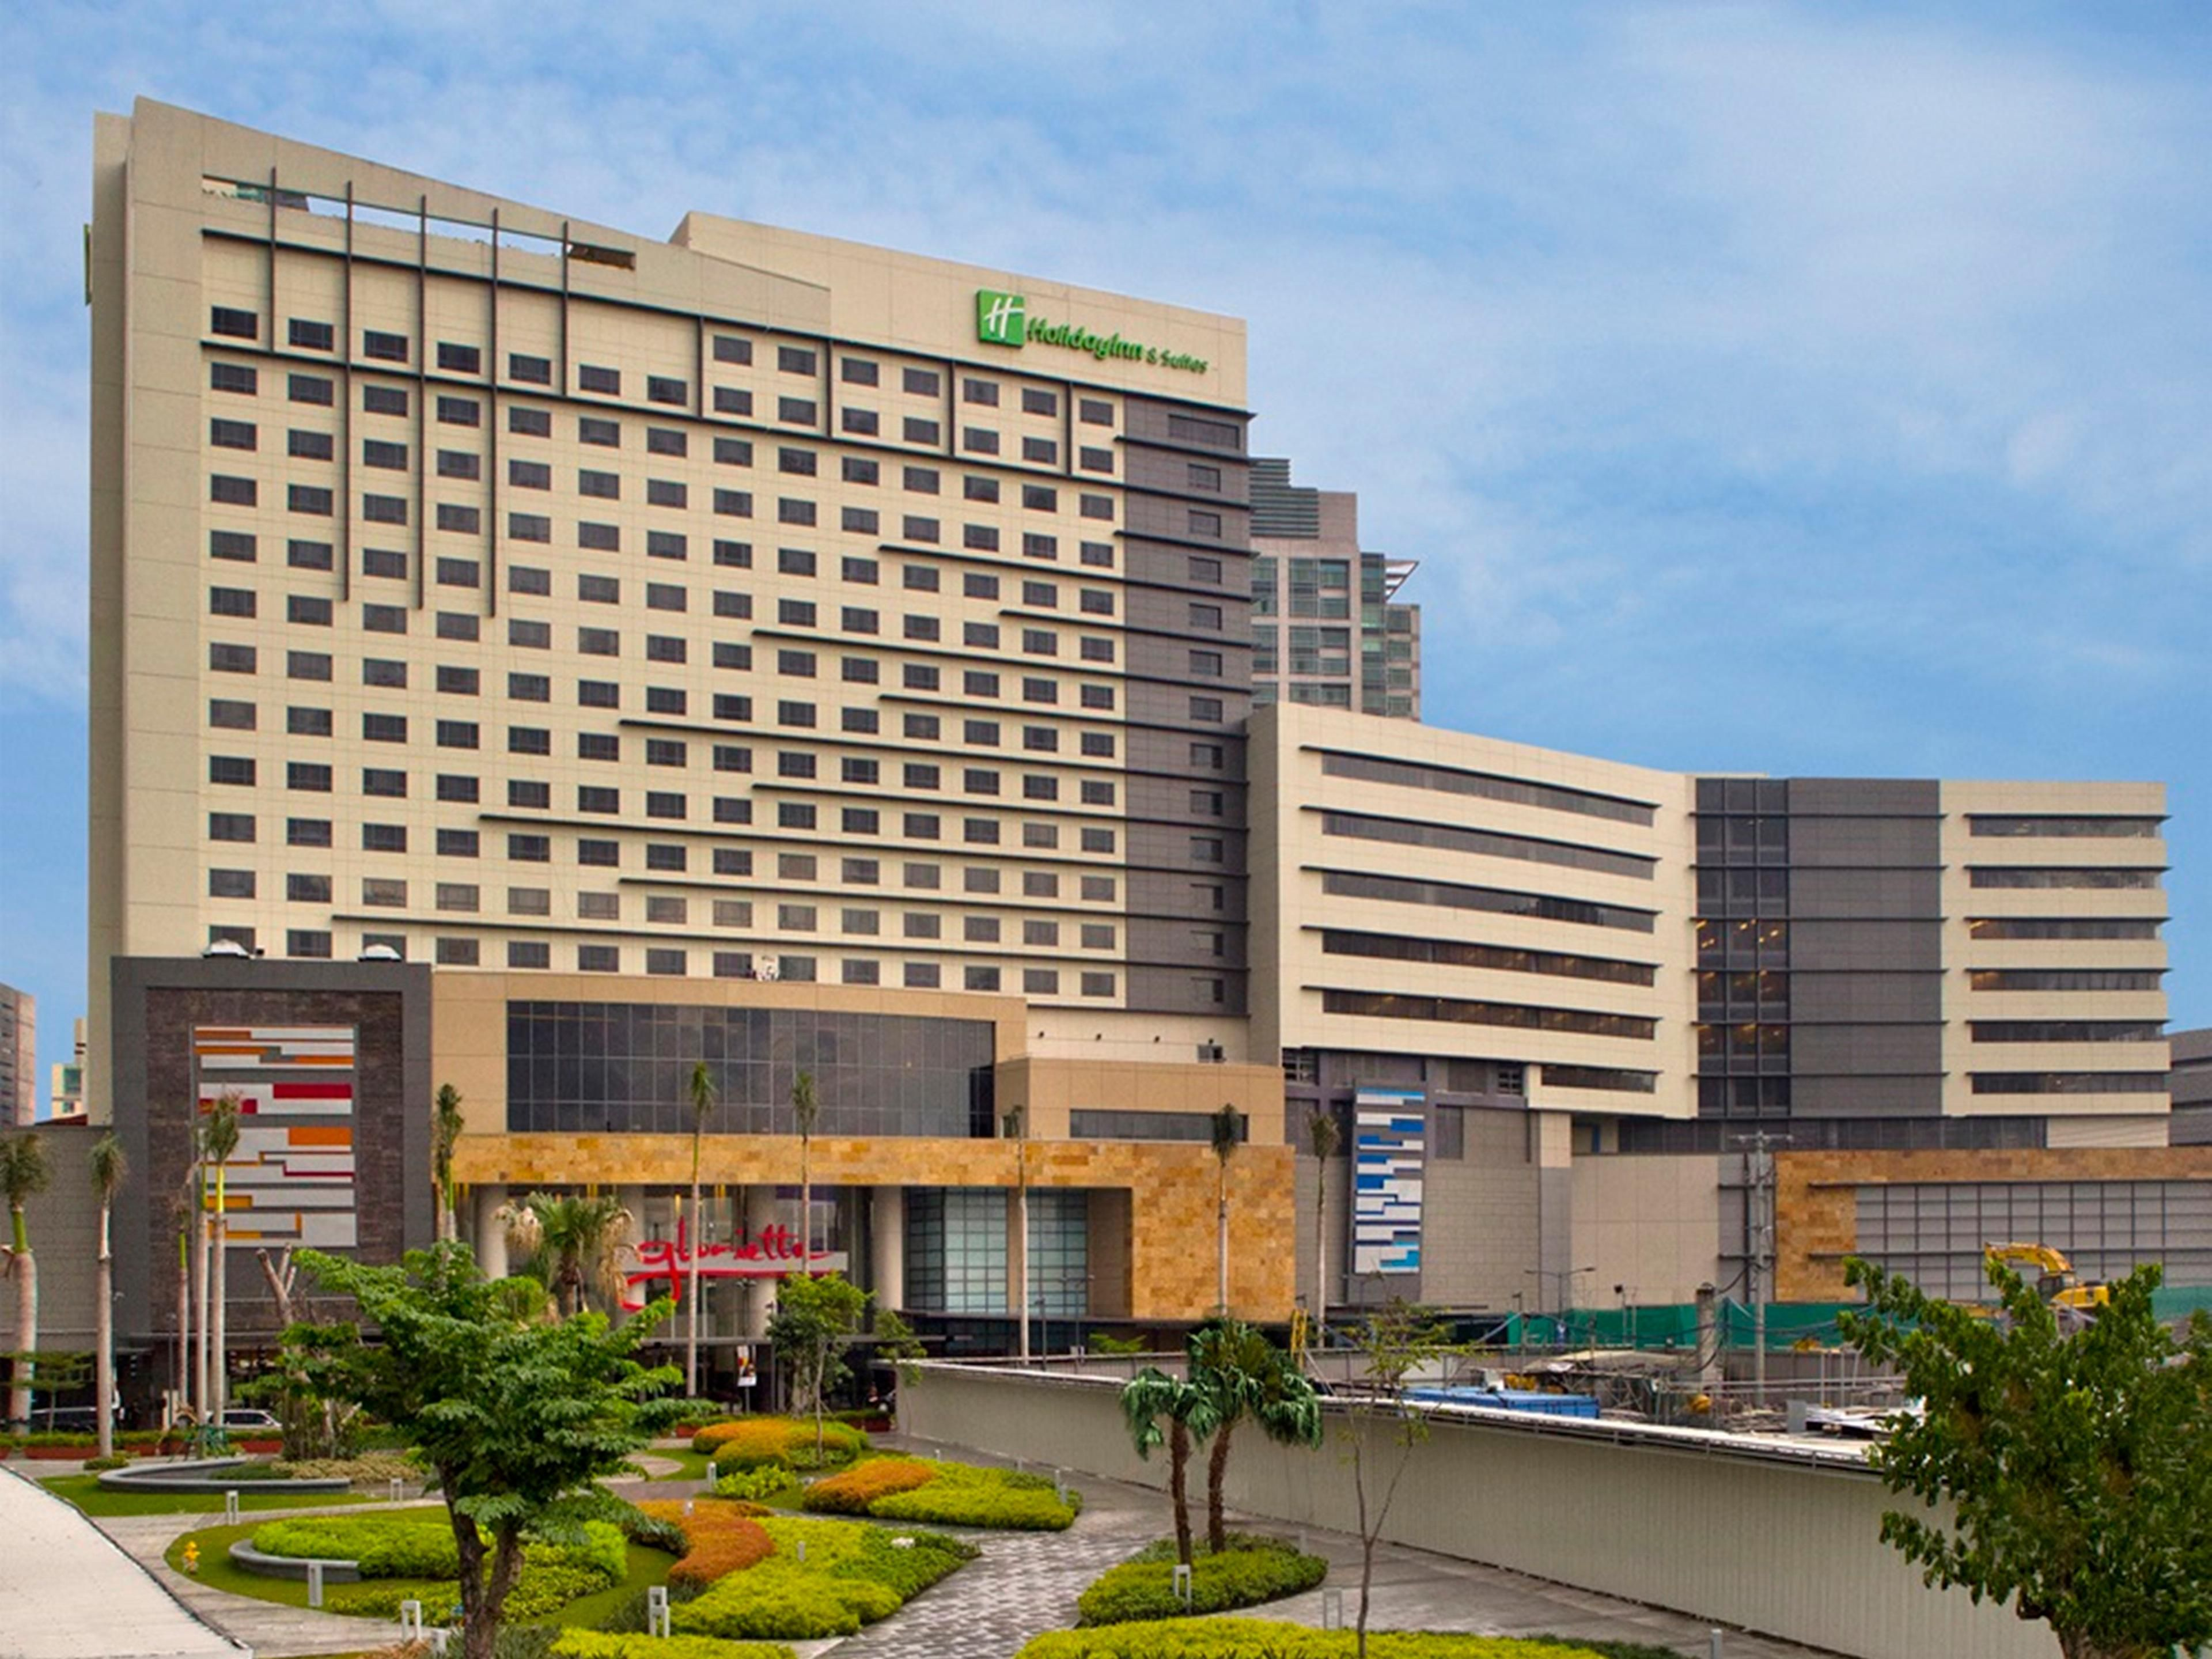 Holiday Inn & Suites Makati is located in Ayala Center